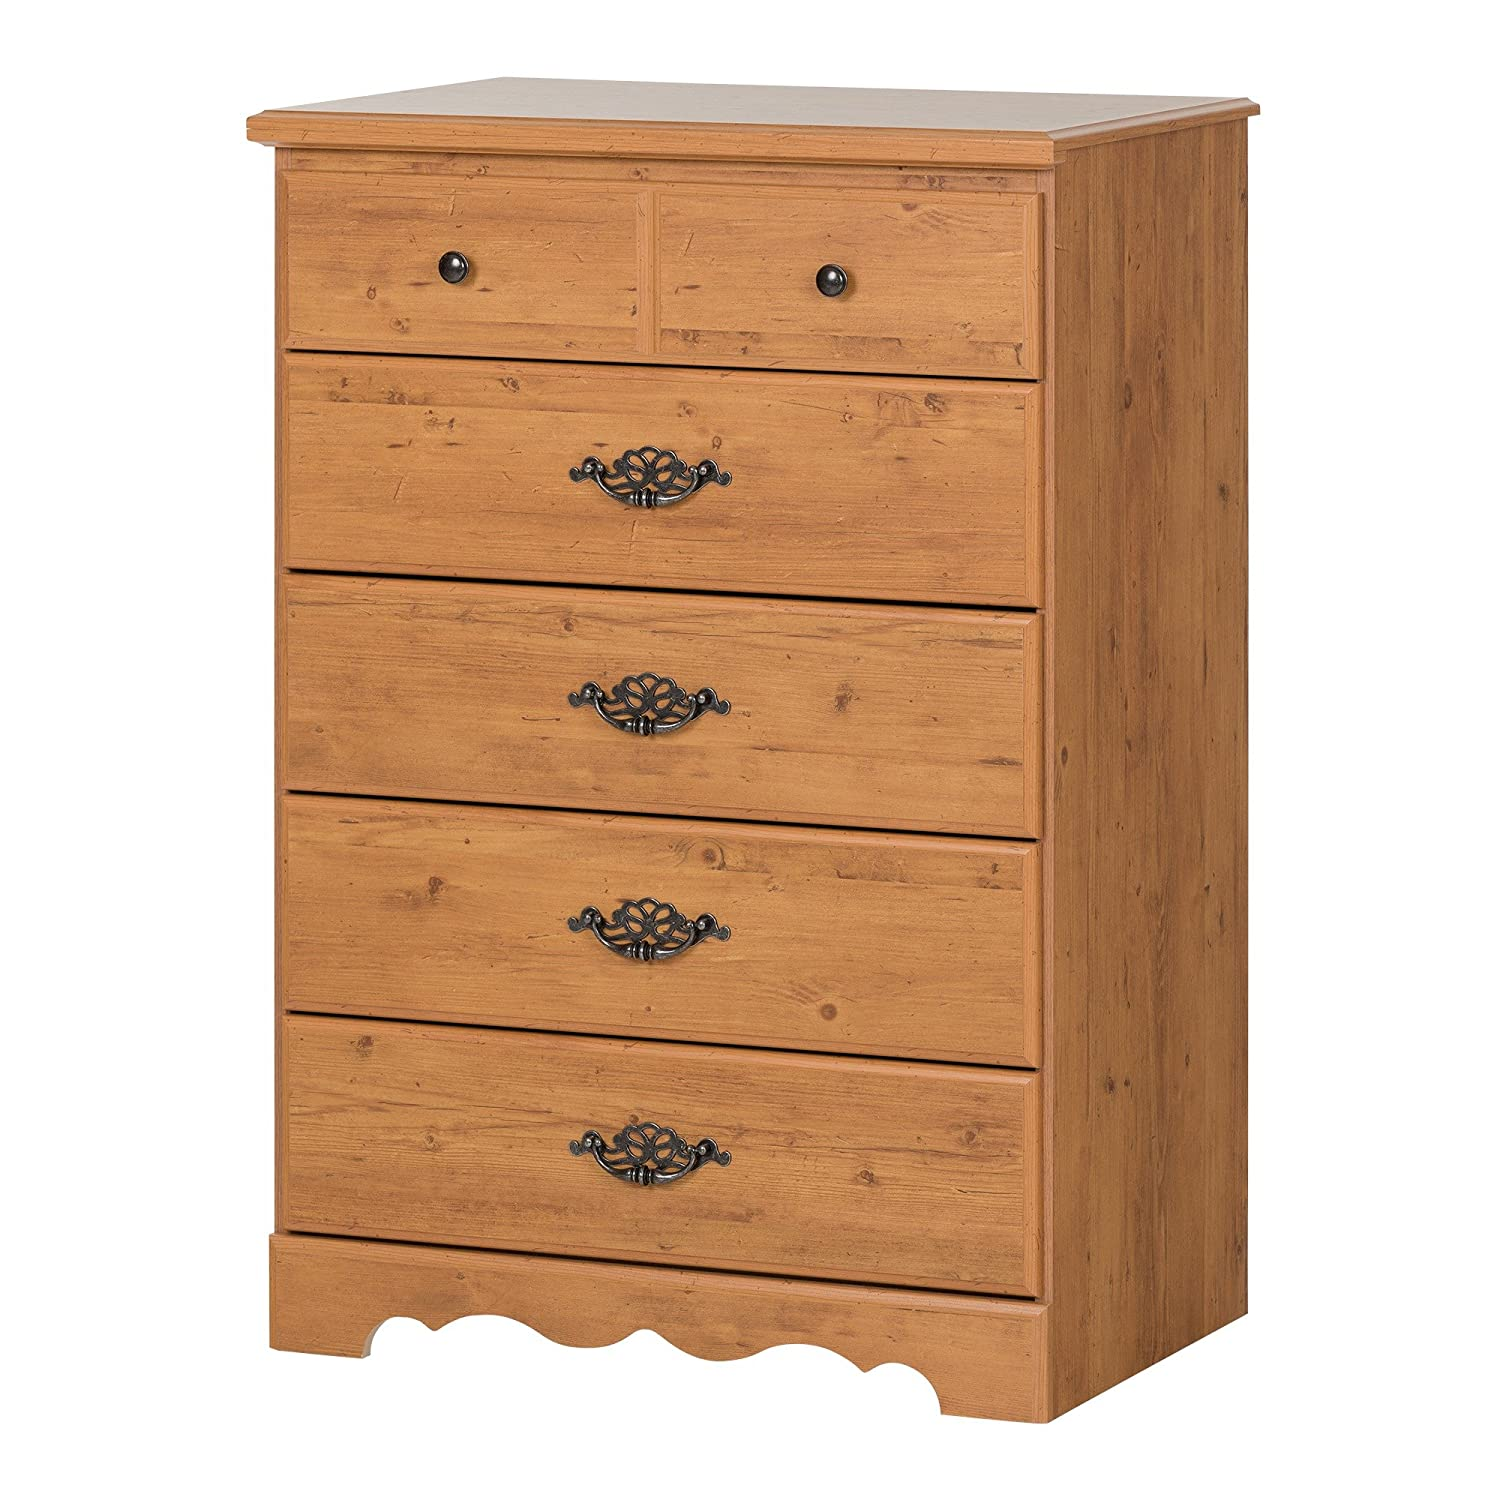 Top 10 Best Bedrooms Dressers (2020 Reviews & Buying Guide) 4